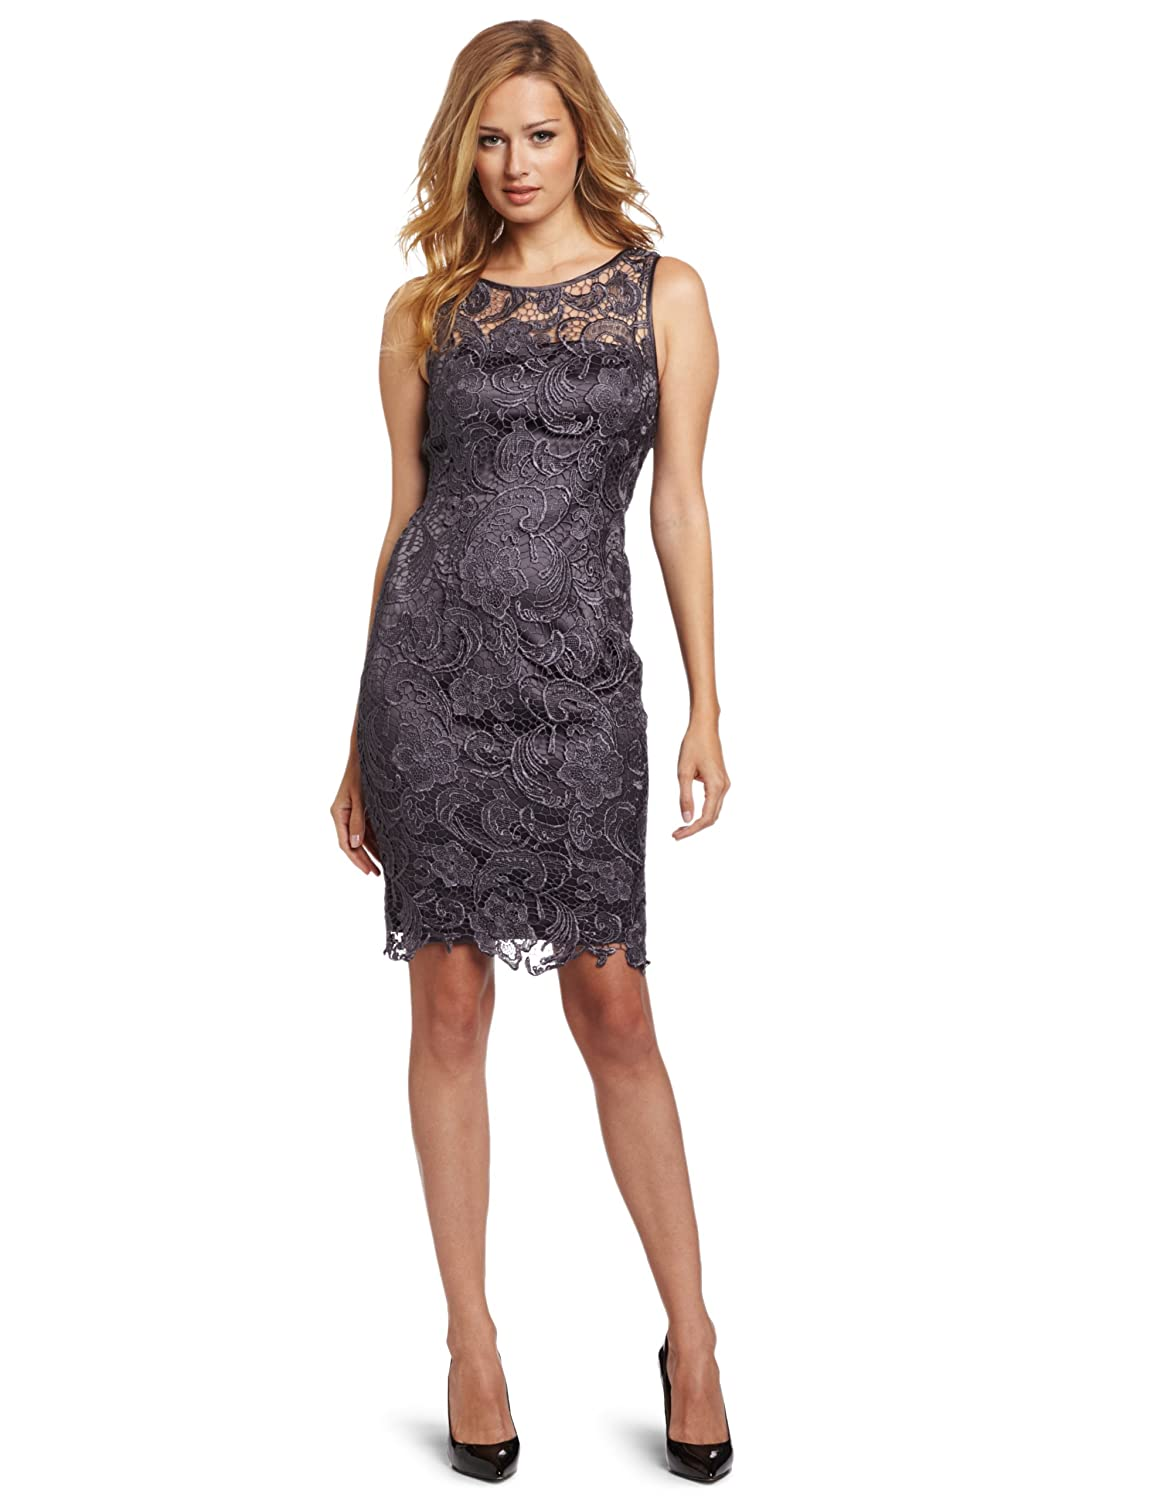 Charcoal Adrianna Papell Women's Illusion Neck Lace Dress